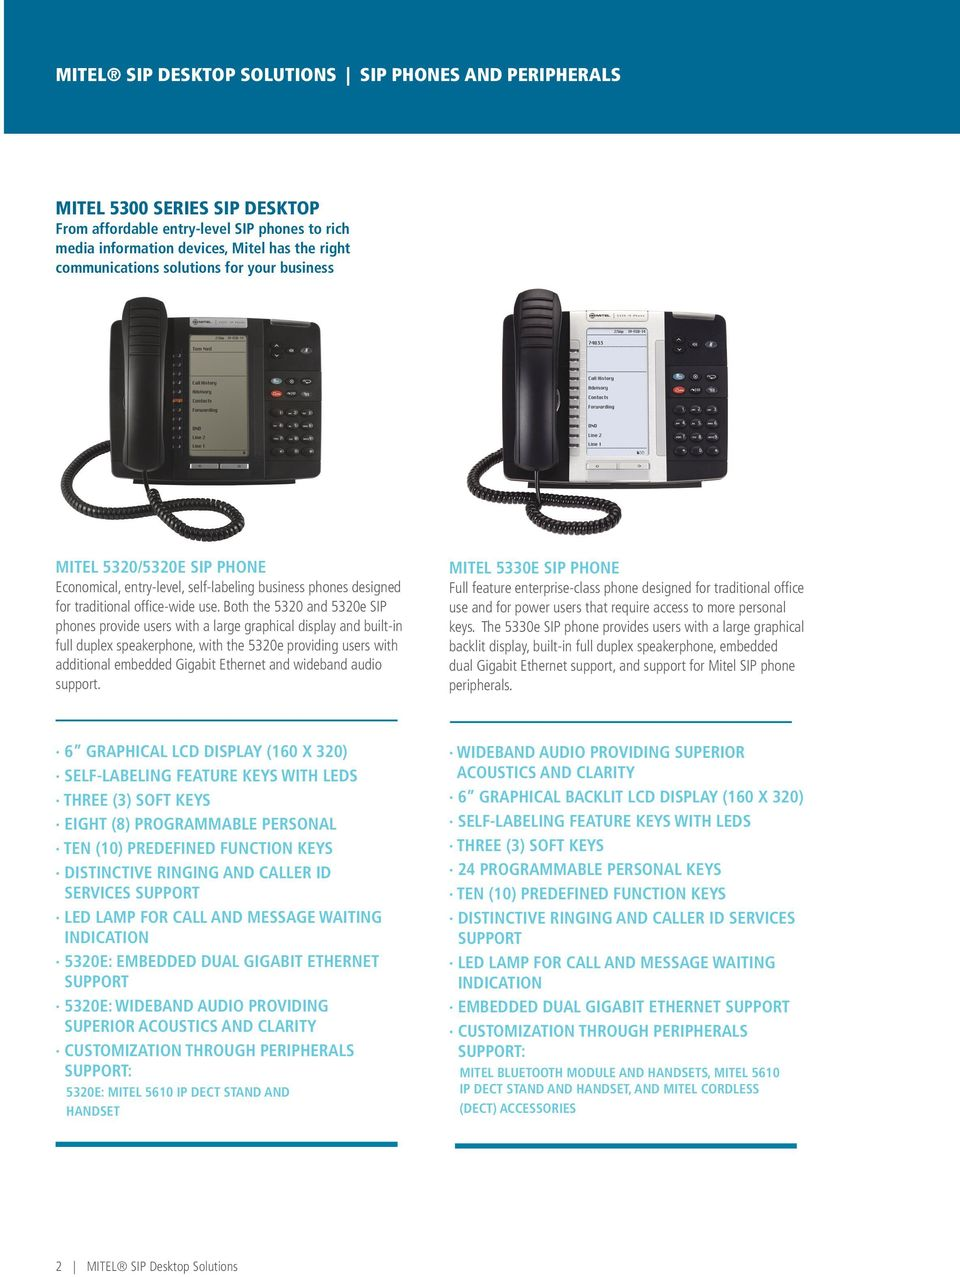 Both the 5320 and 5320e SIP phones provide users with a large graphical display and built-in full duplex speakerphone, with the 5320e providing users with additional embedded Gigabit Ethernet and